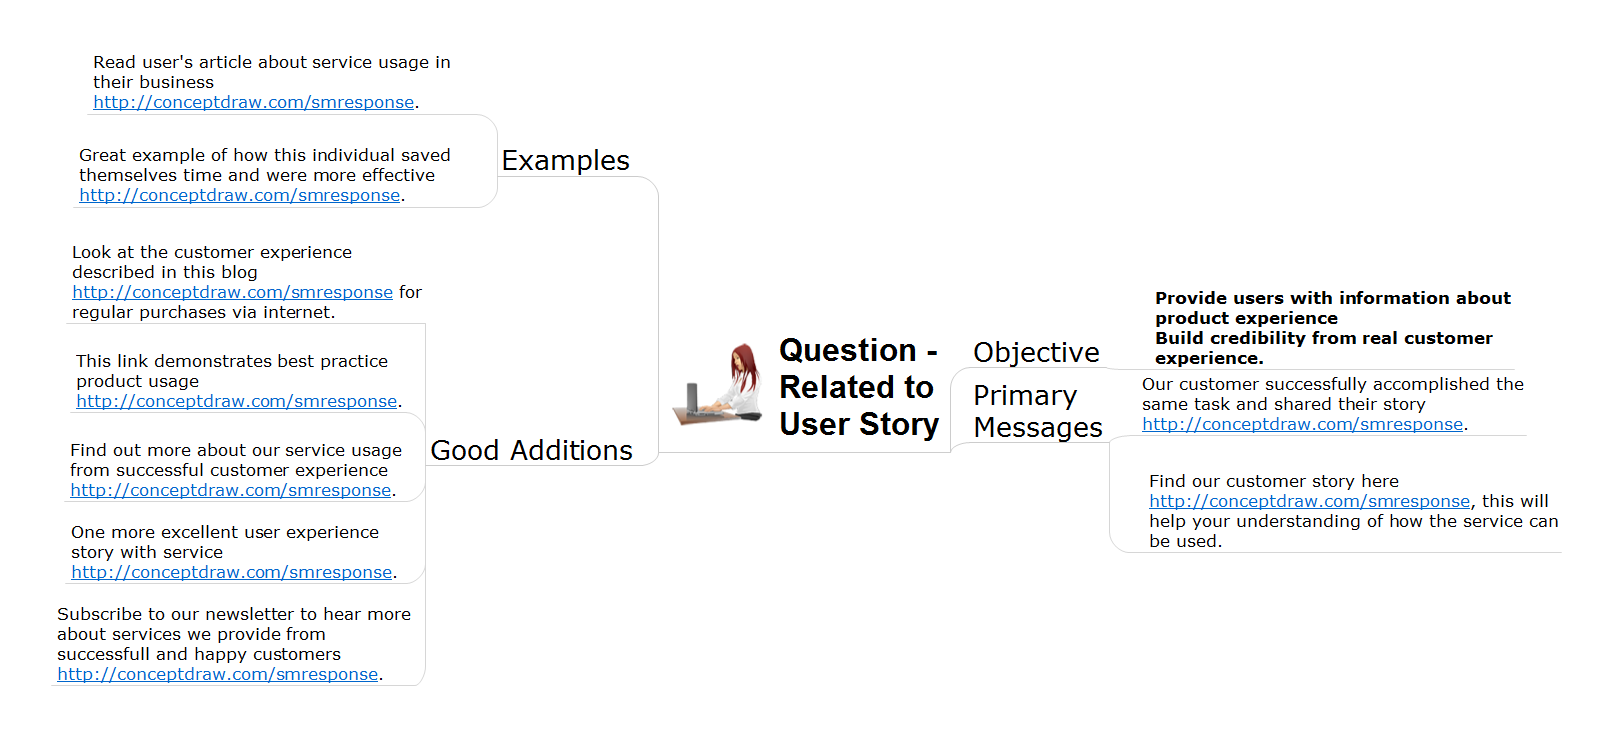 Action mind map - Address to user story question